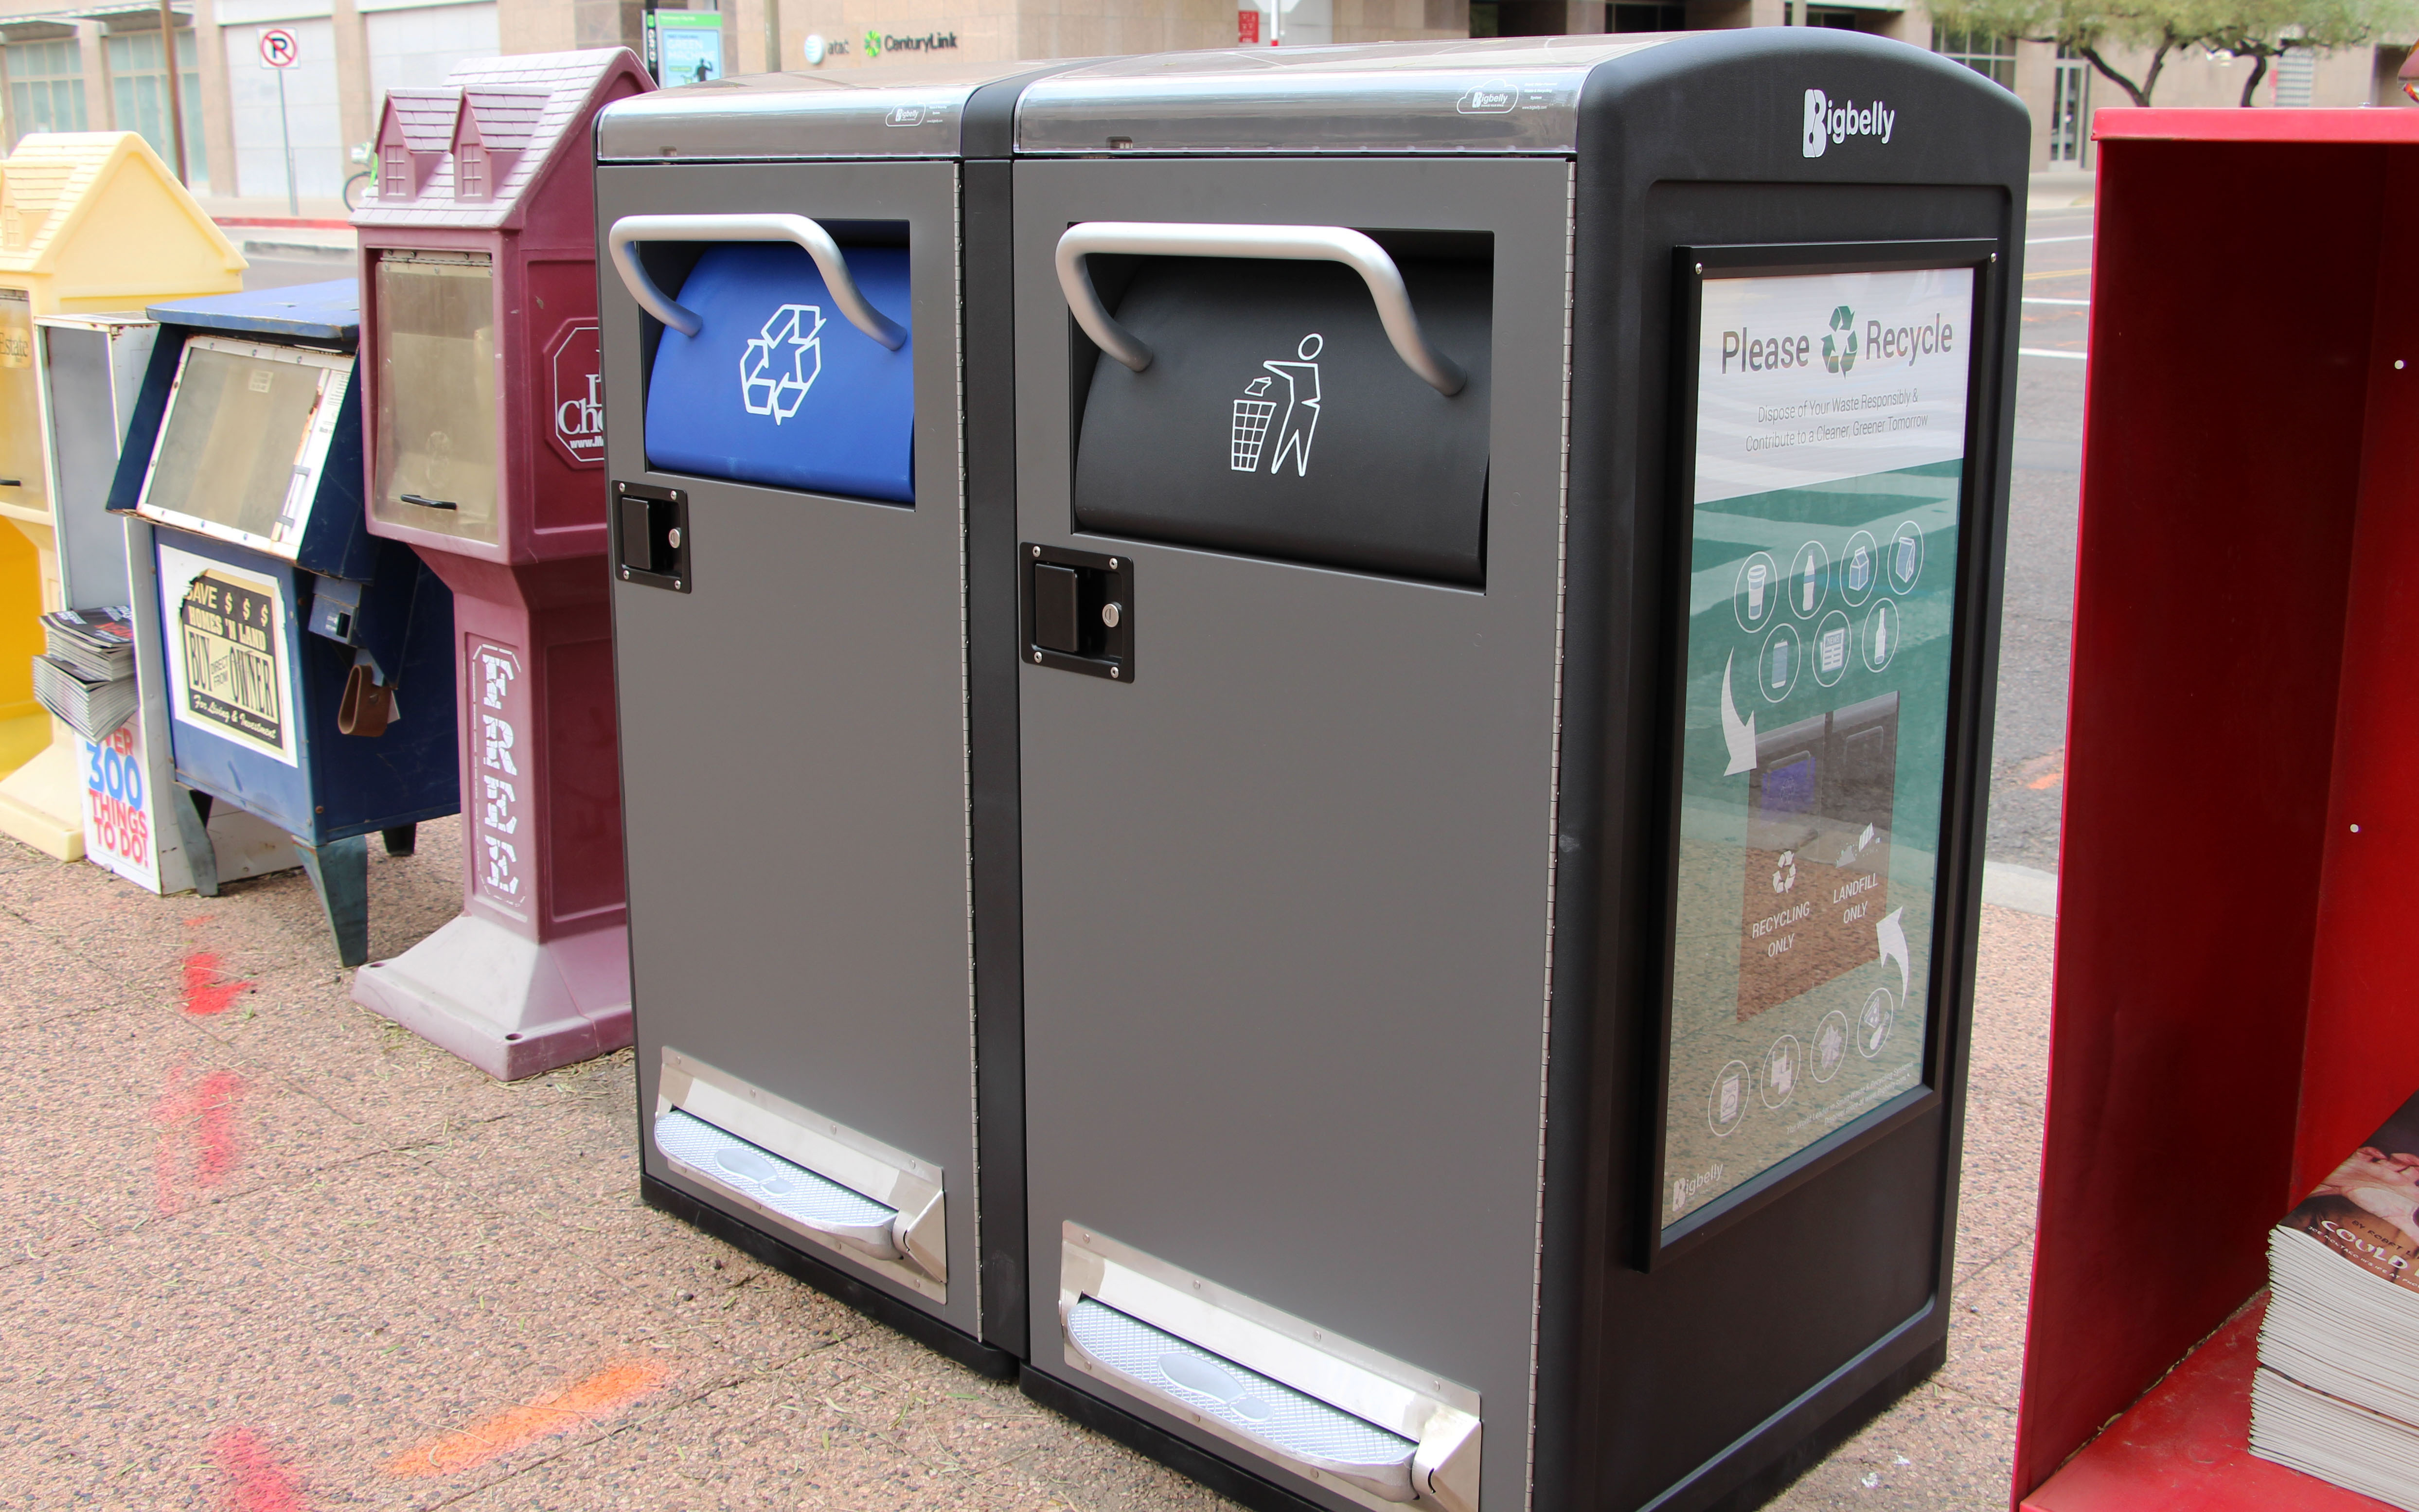 Phoenix has placed 15 solar-powered trash cans, with recycling bins attached in downtown Phoenix. (Photo By Morgan Wheeler/Cronkite News)